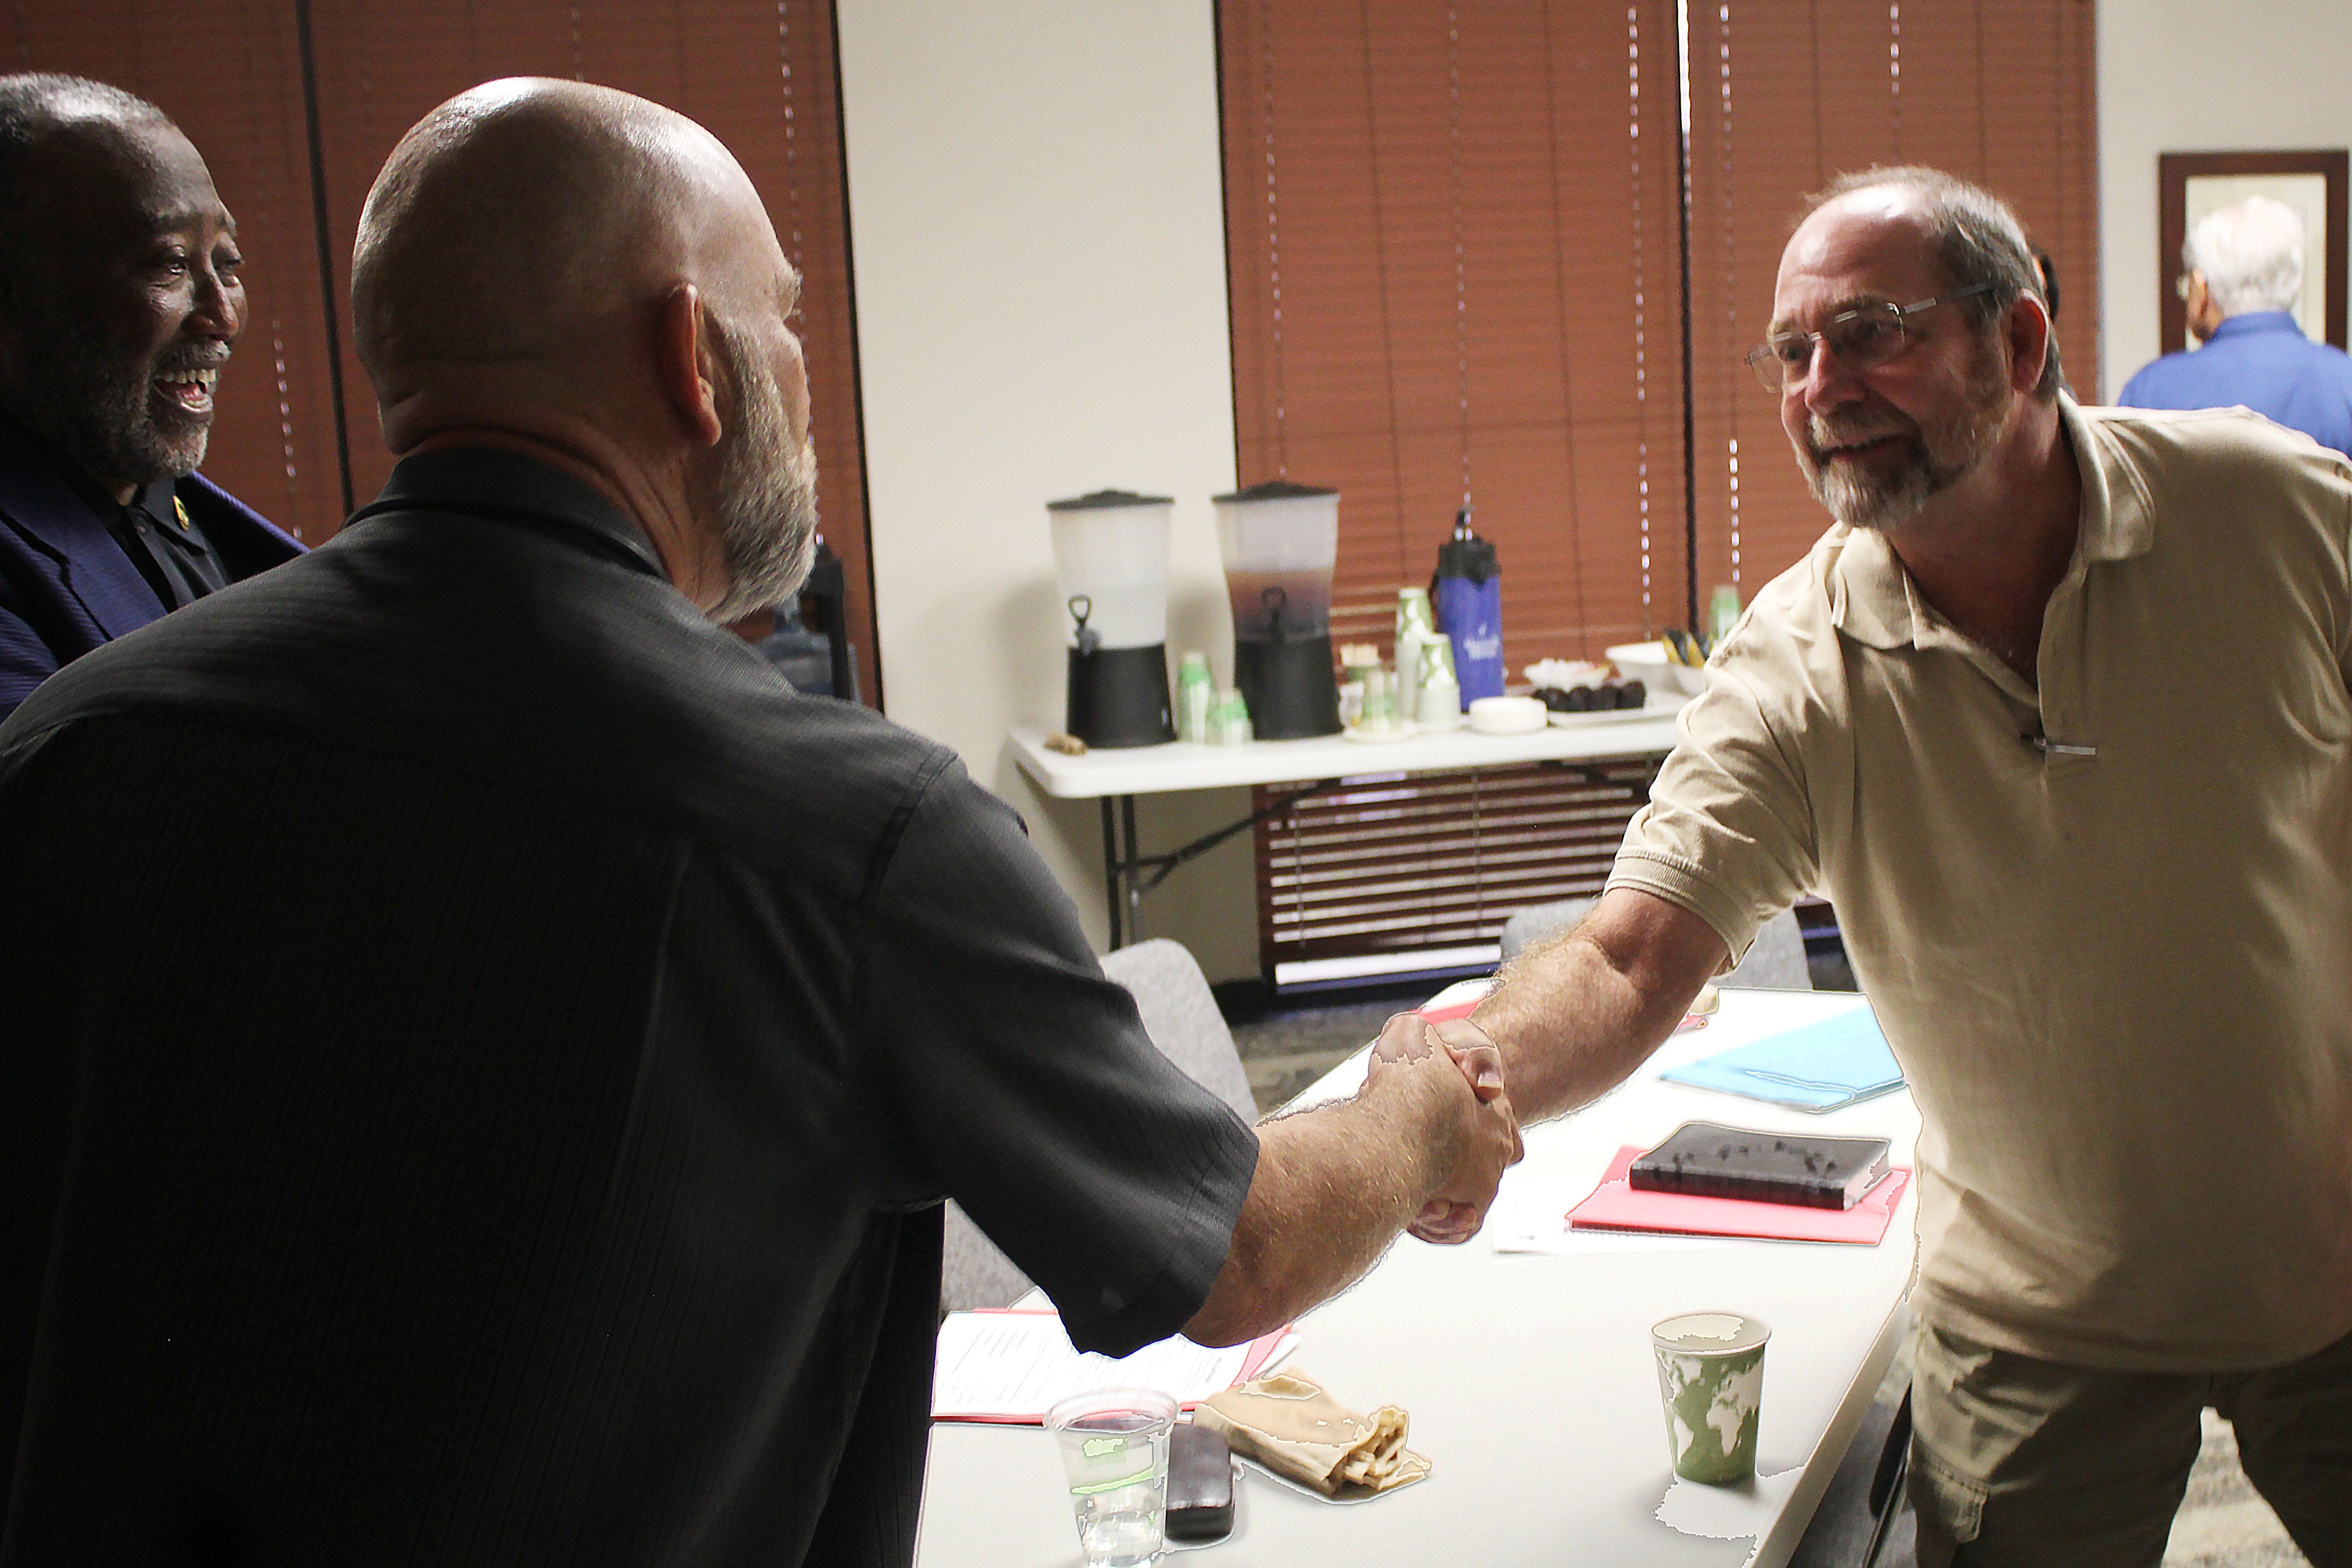 Caption: Mark George (right), a chaplain at the Caldwell County Jail in Lockhart, Tx., shakes hands with VA clergy training instructor Larry Collins, while attendee Vernon Cooper looks on., Credit: Carson Frame/American Homefront